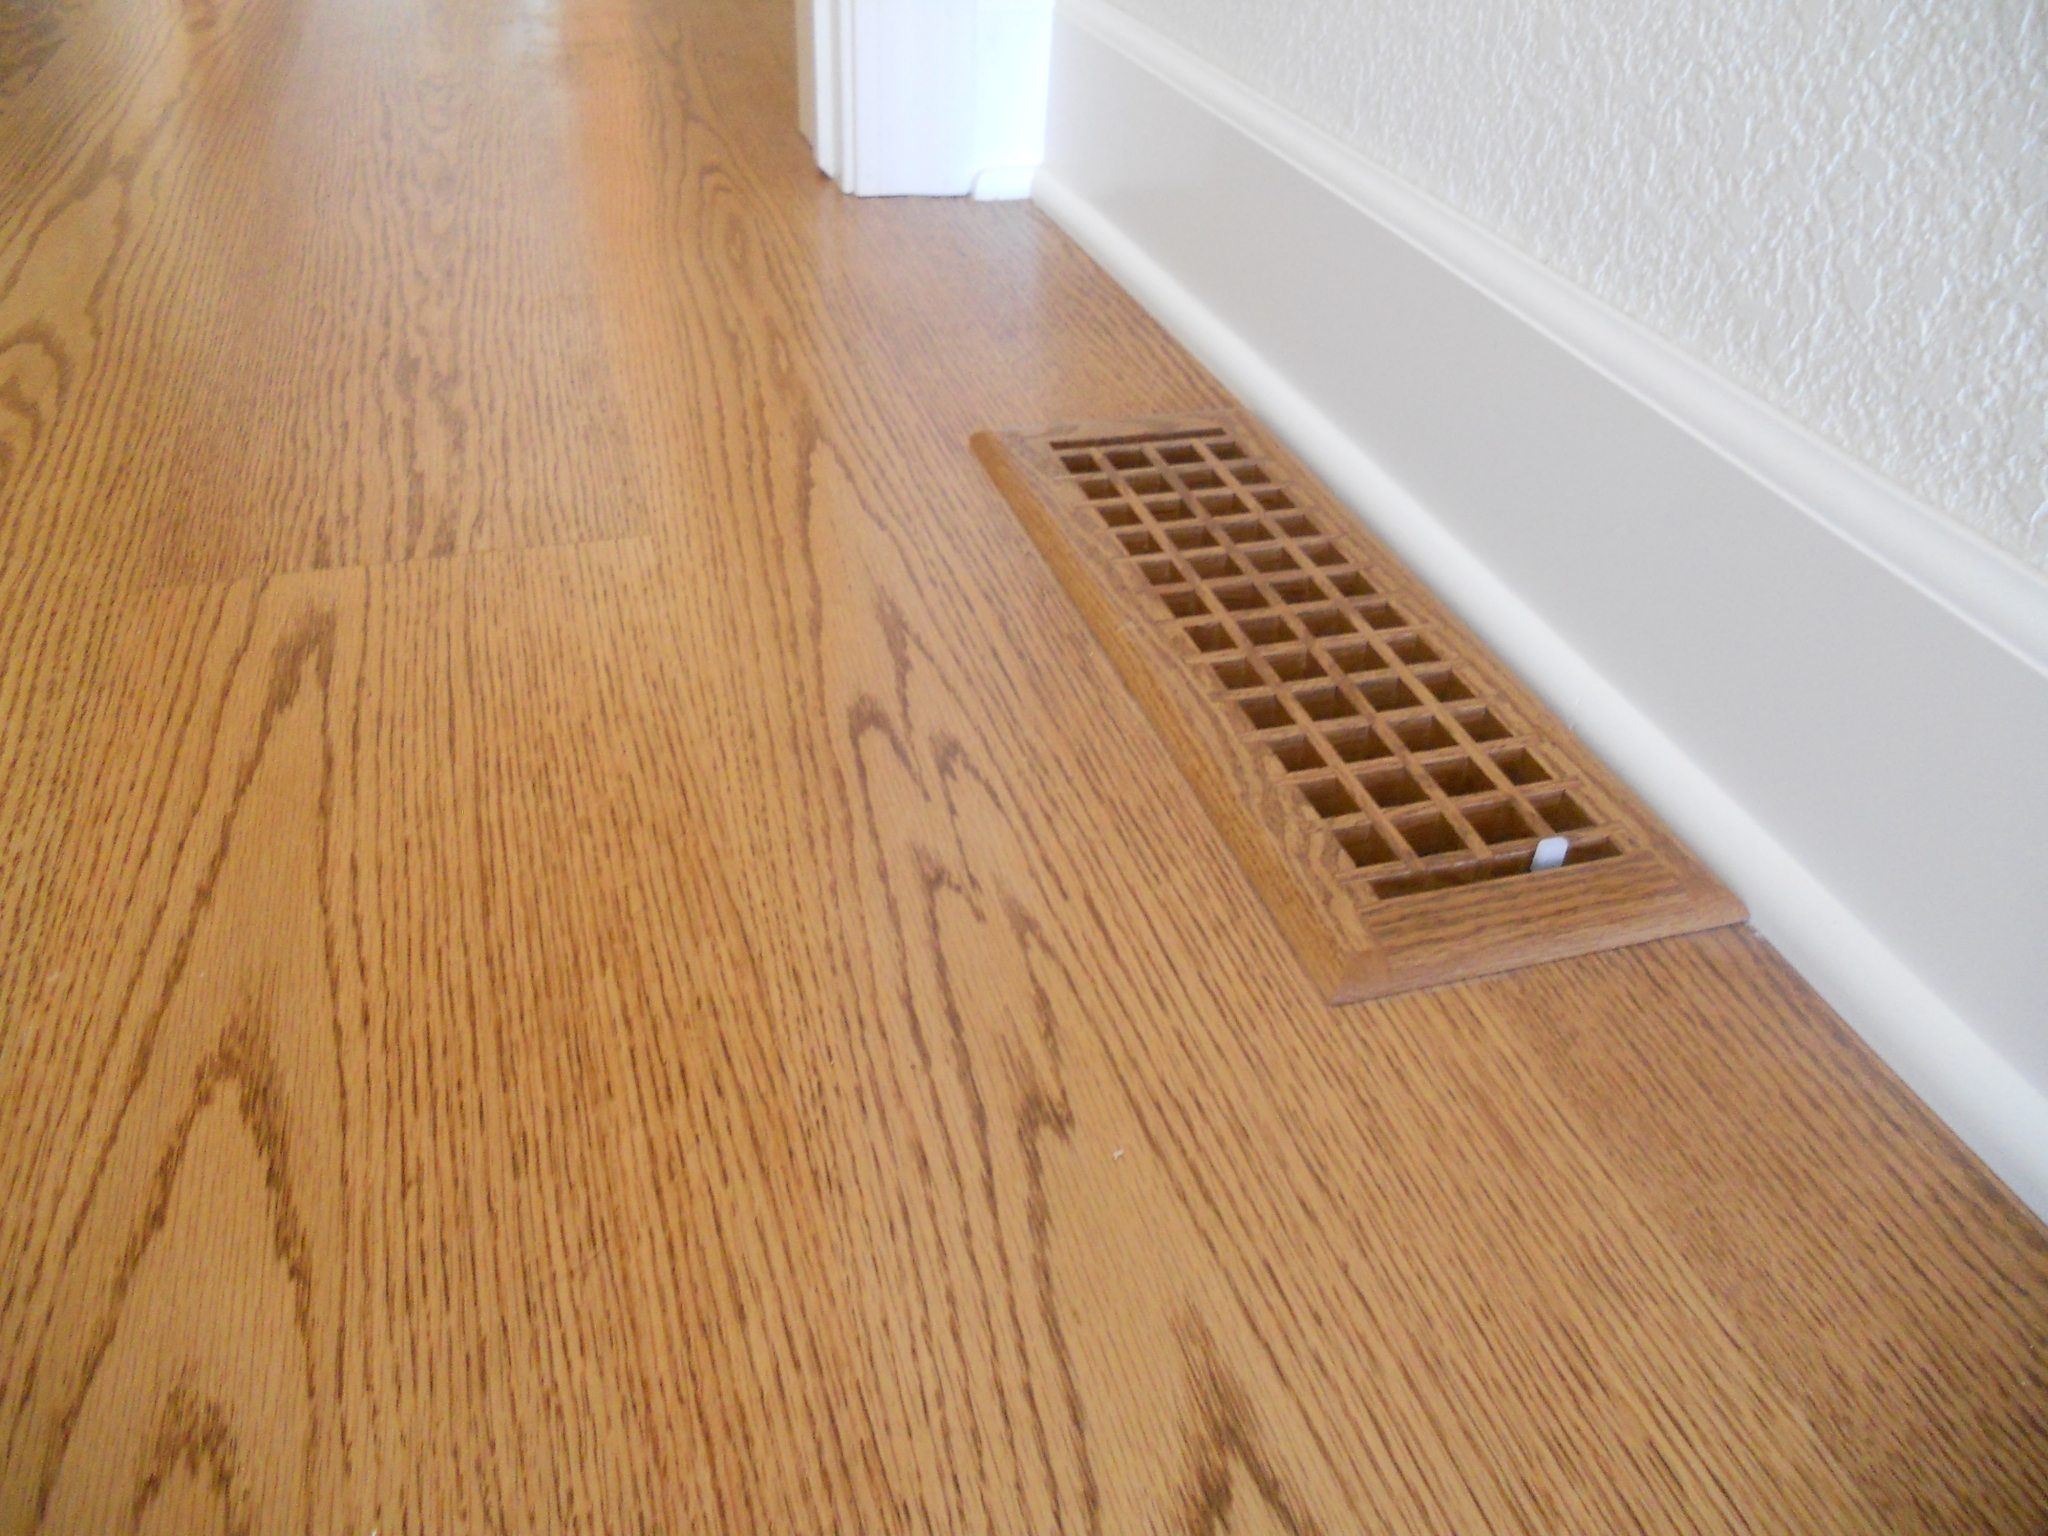 Red oak Flooring & Solid Wood Flooring from Carlisle Wide Plank Floors